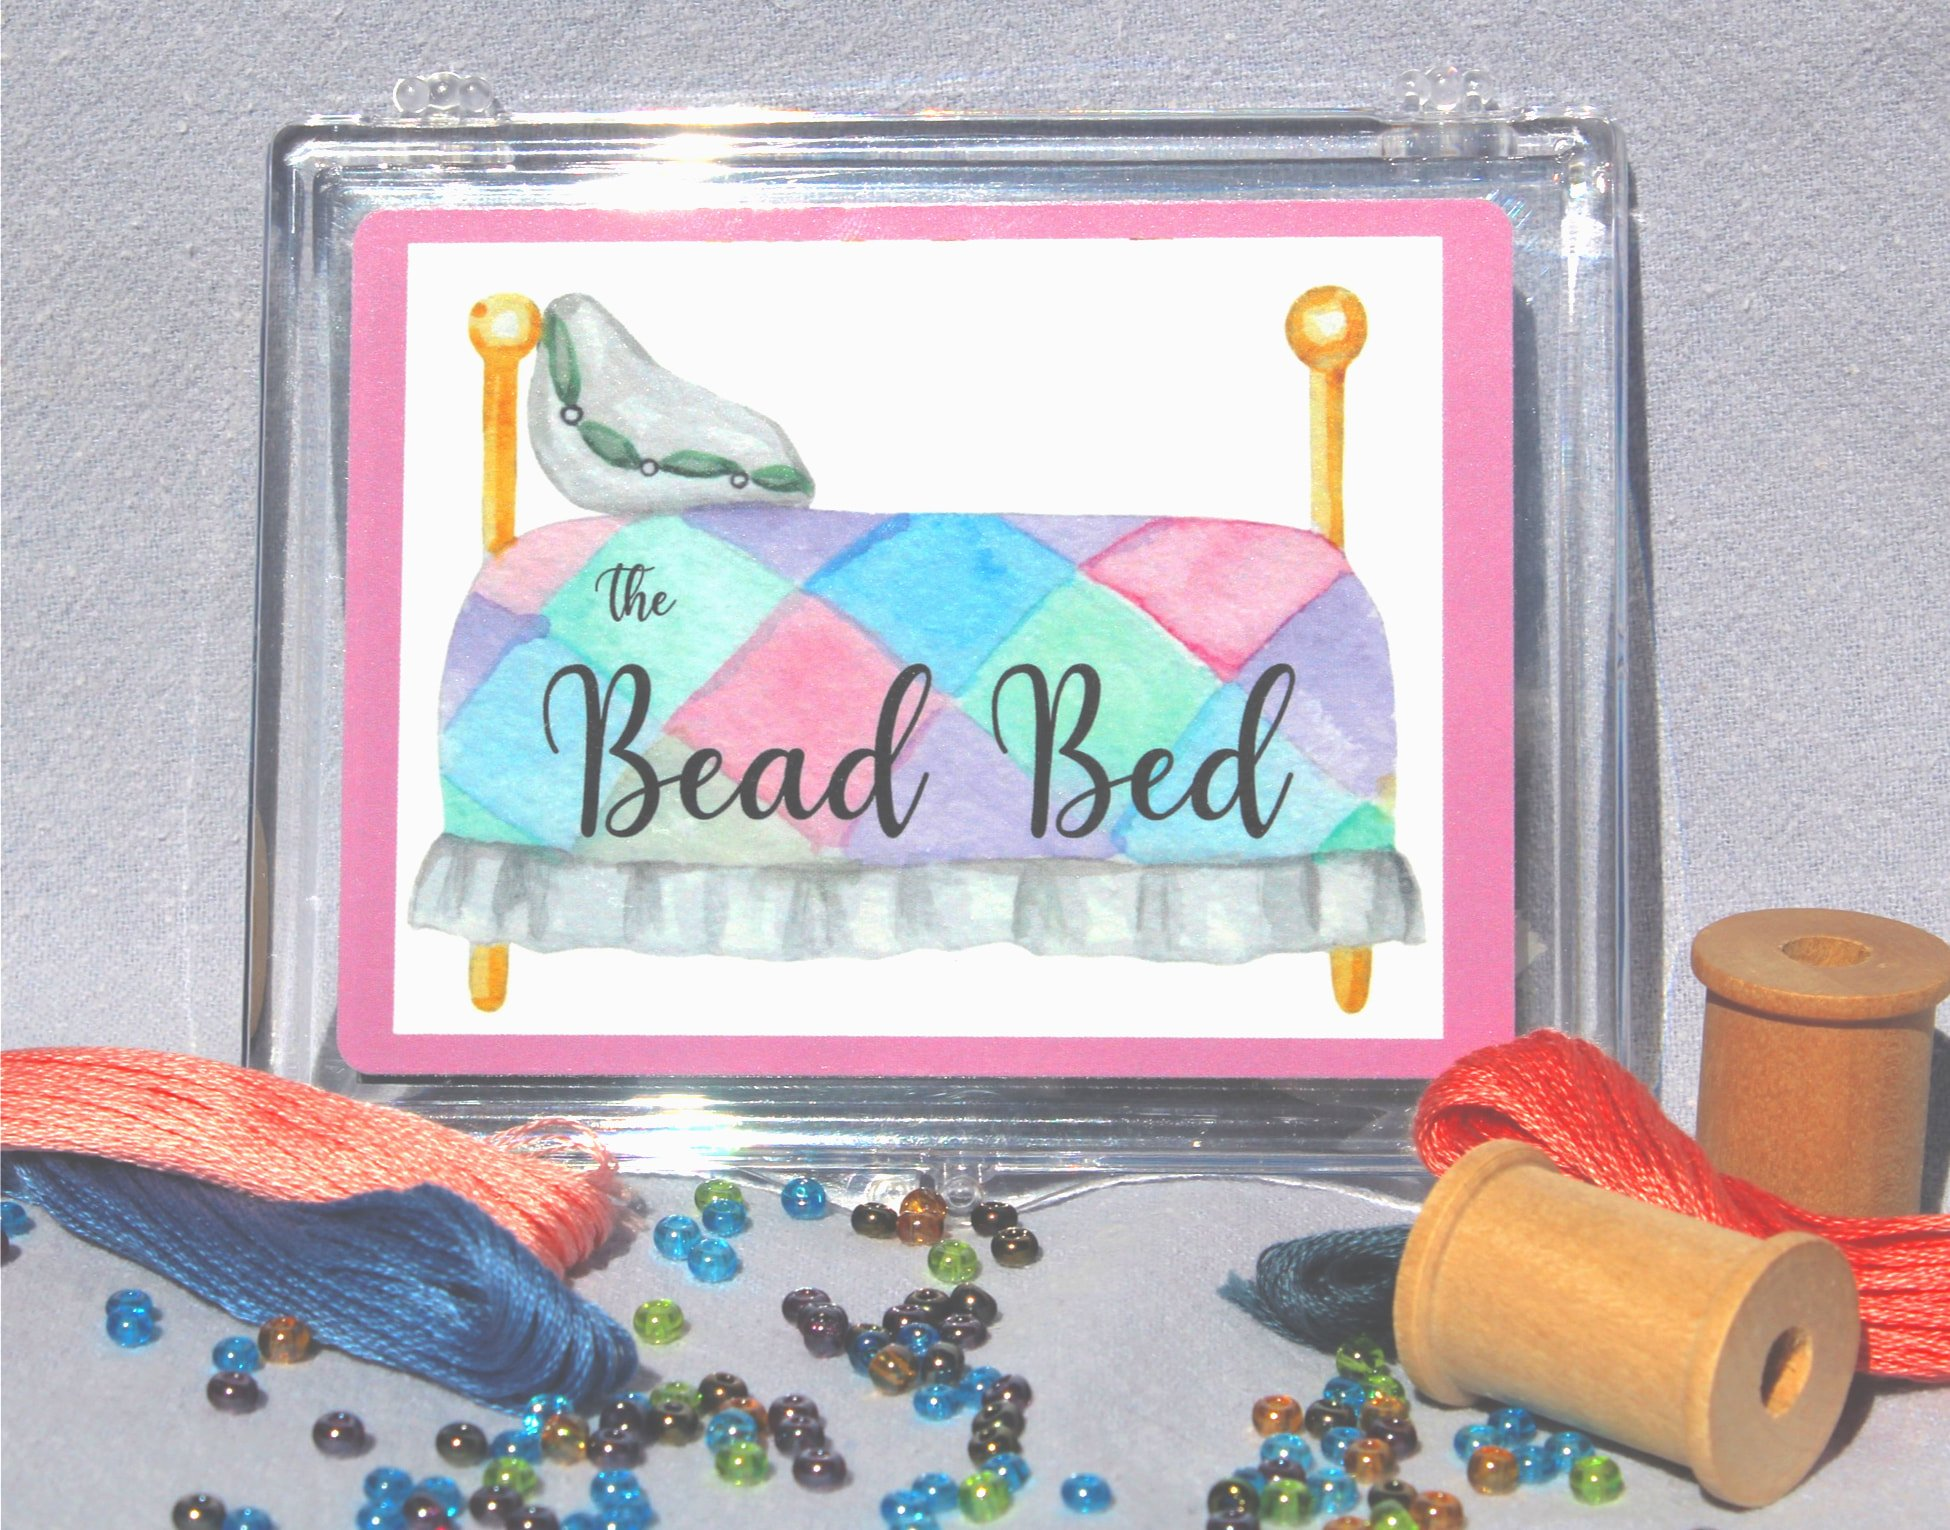 The Bead Bed